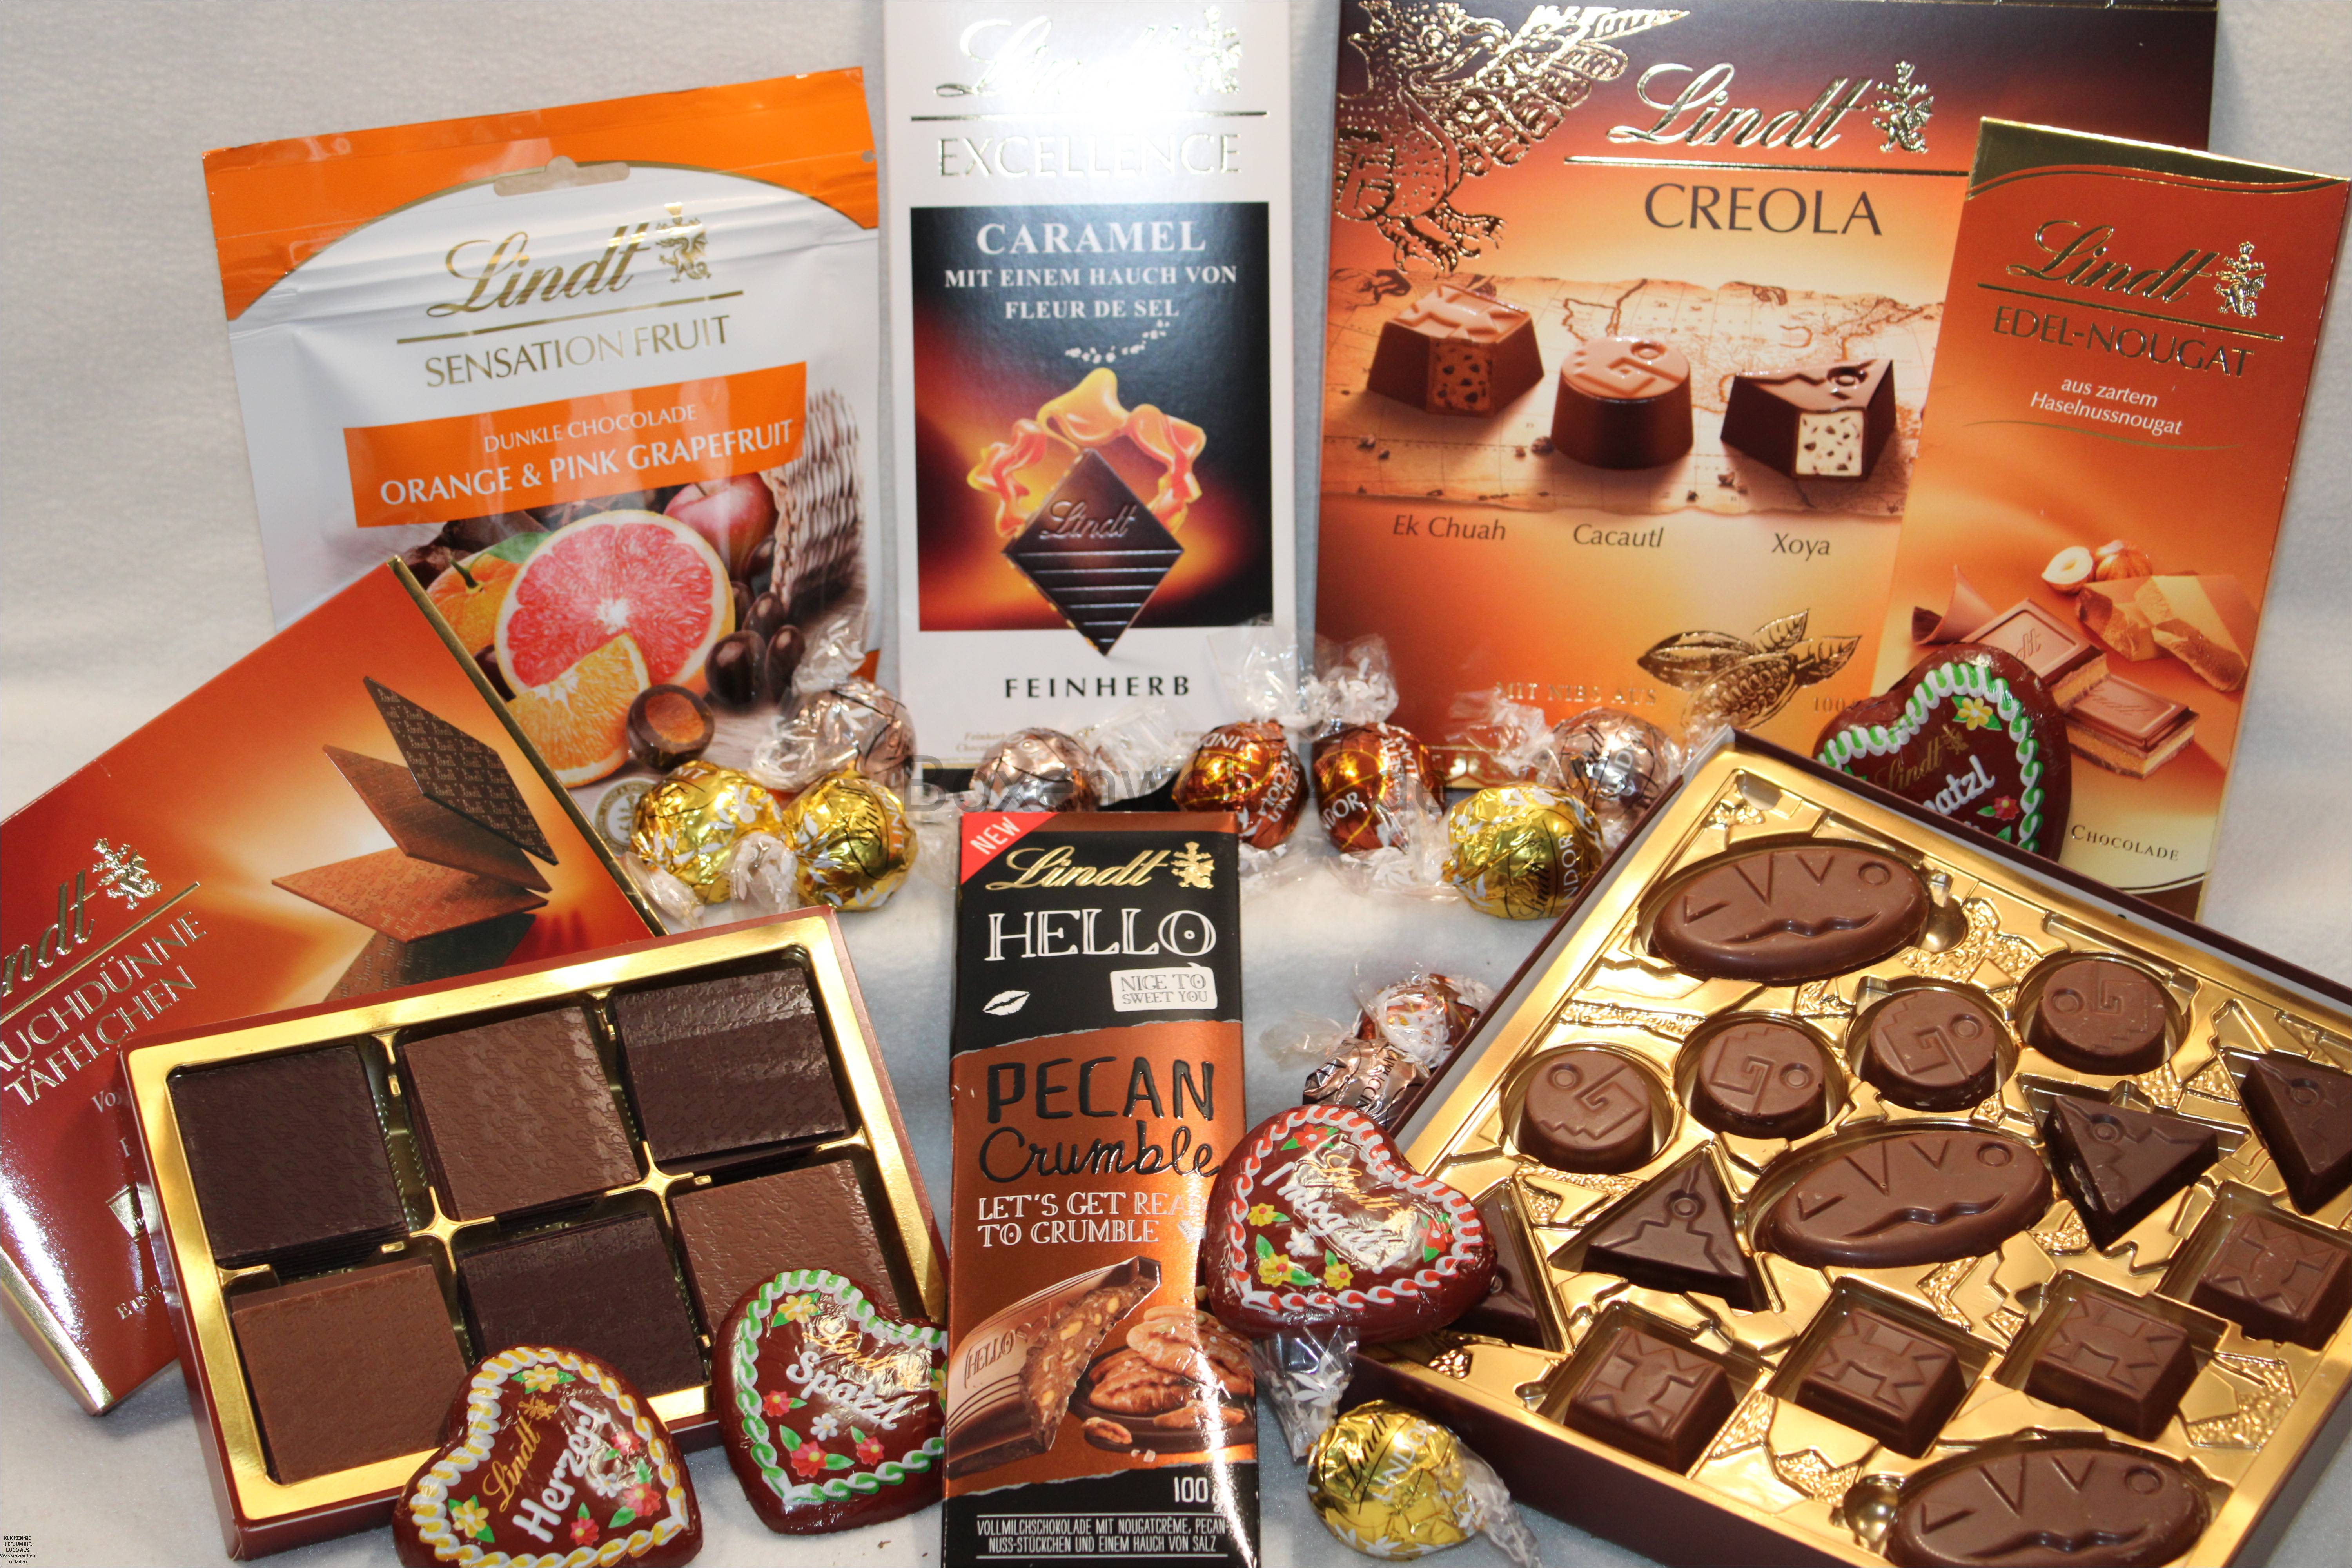 Lindt Chocoalden Club Boxenwelt24.de